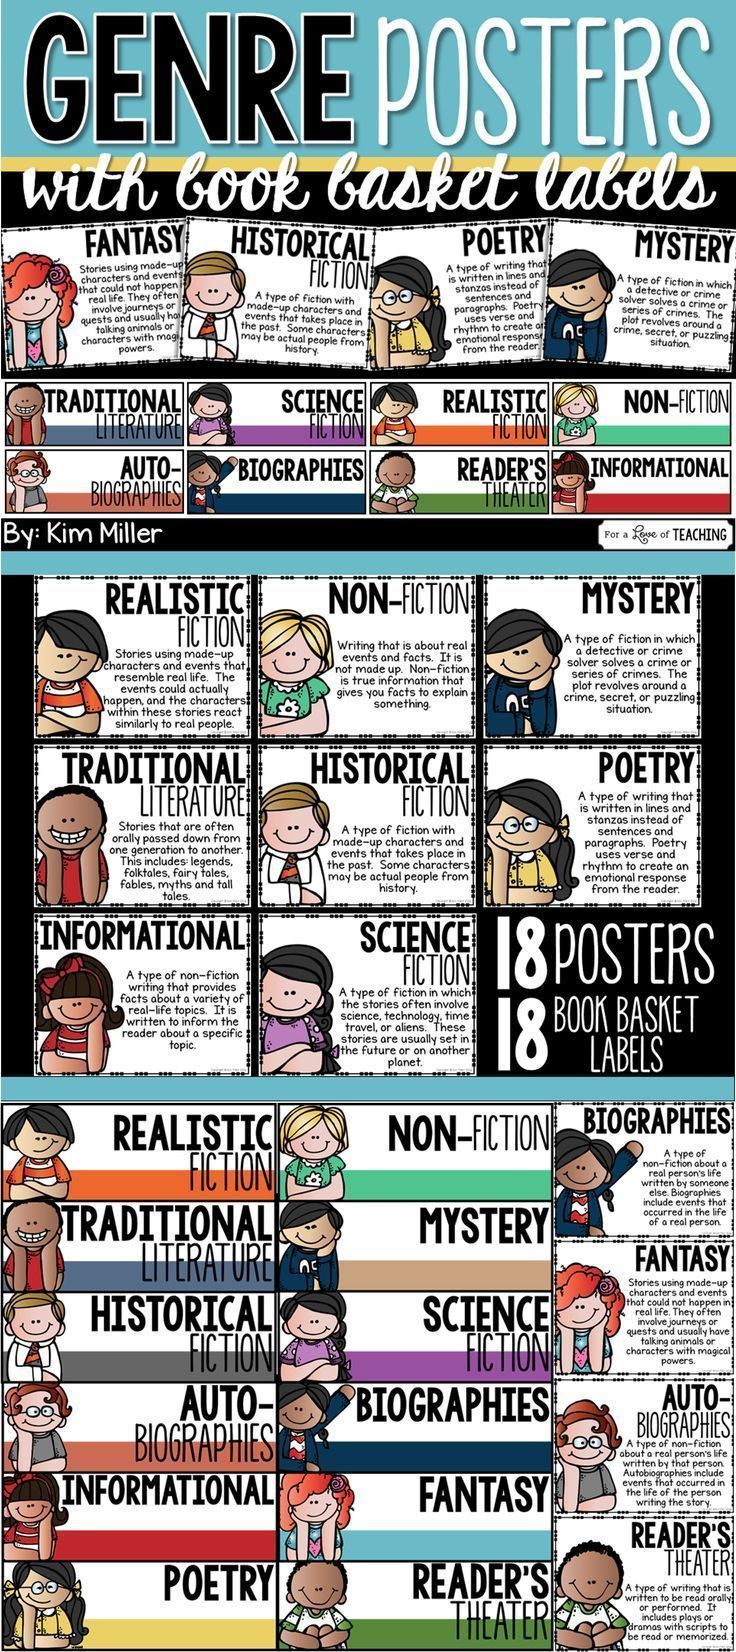 Genre Posters with book basket labels - 18 posters and 18 book basket labels for the classroom.